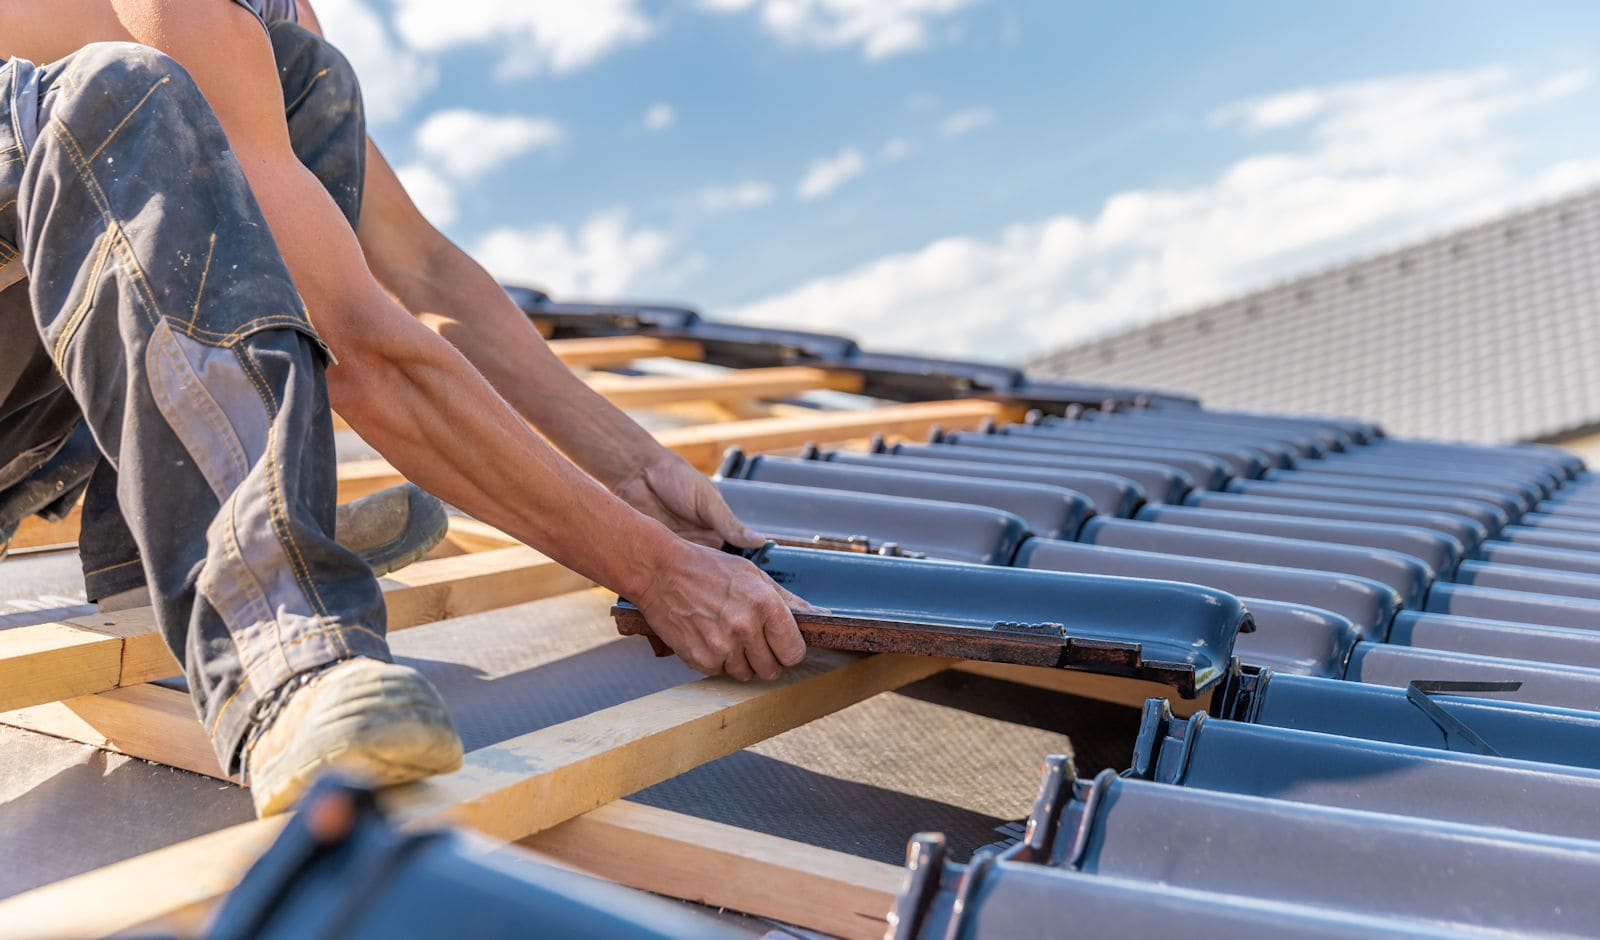 Roofing Company Austin TX- Get Your Roof From The Best!